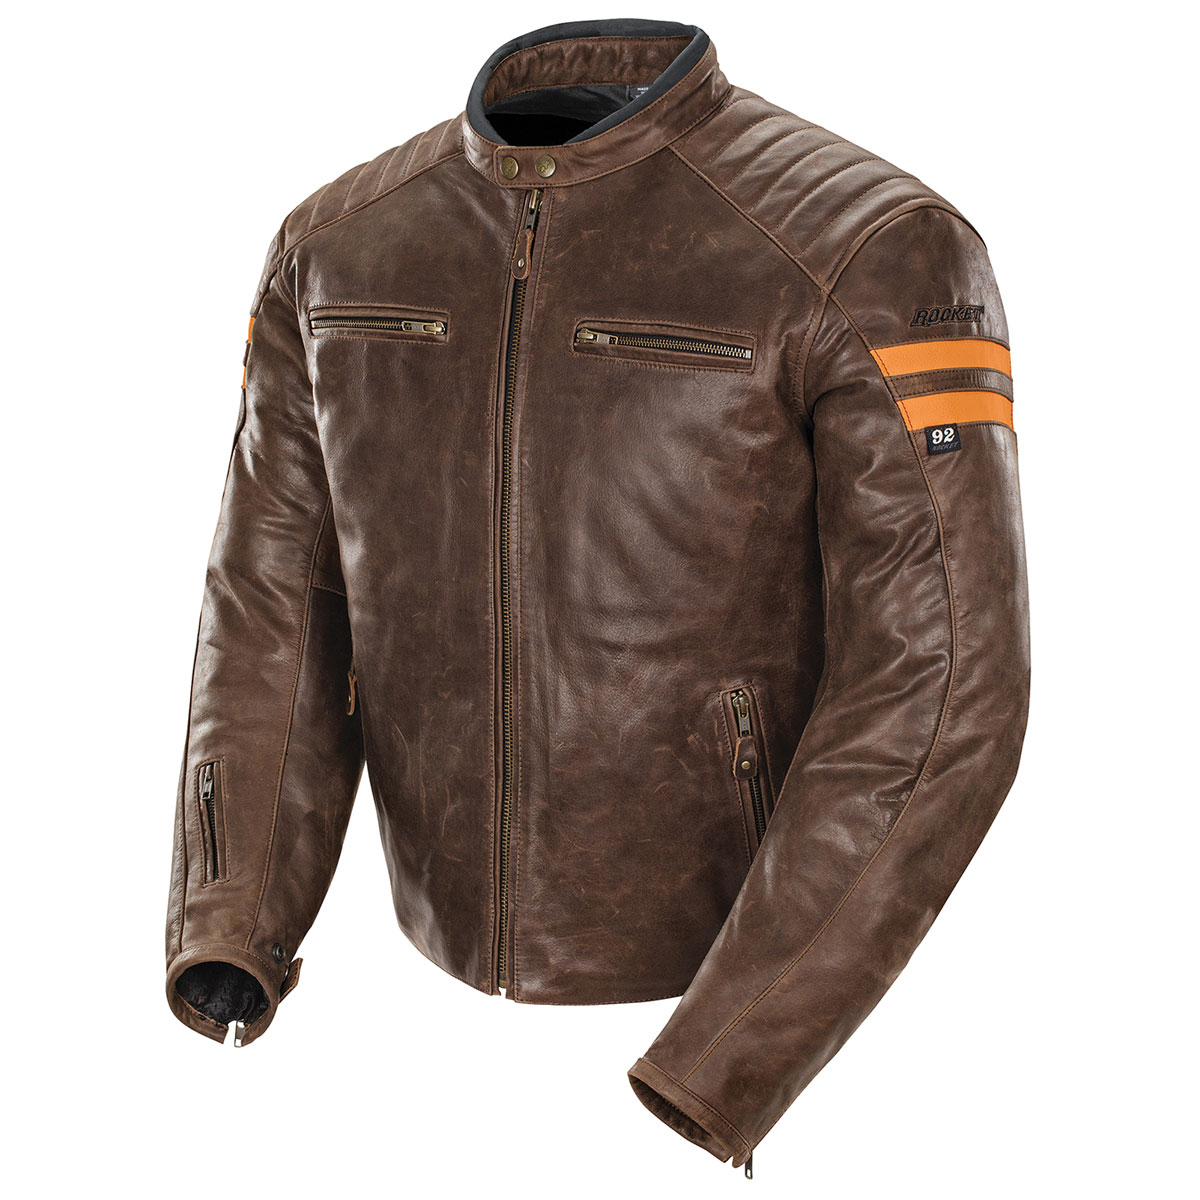 Joe Rocket Men's Classic '92 Brown/Orange Leather Jacket